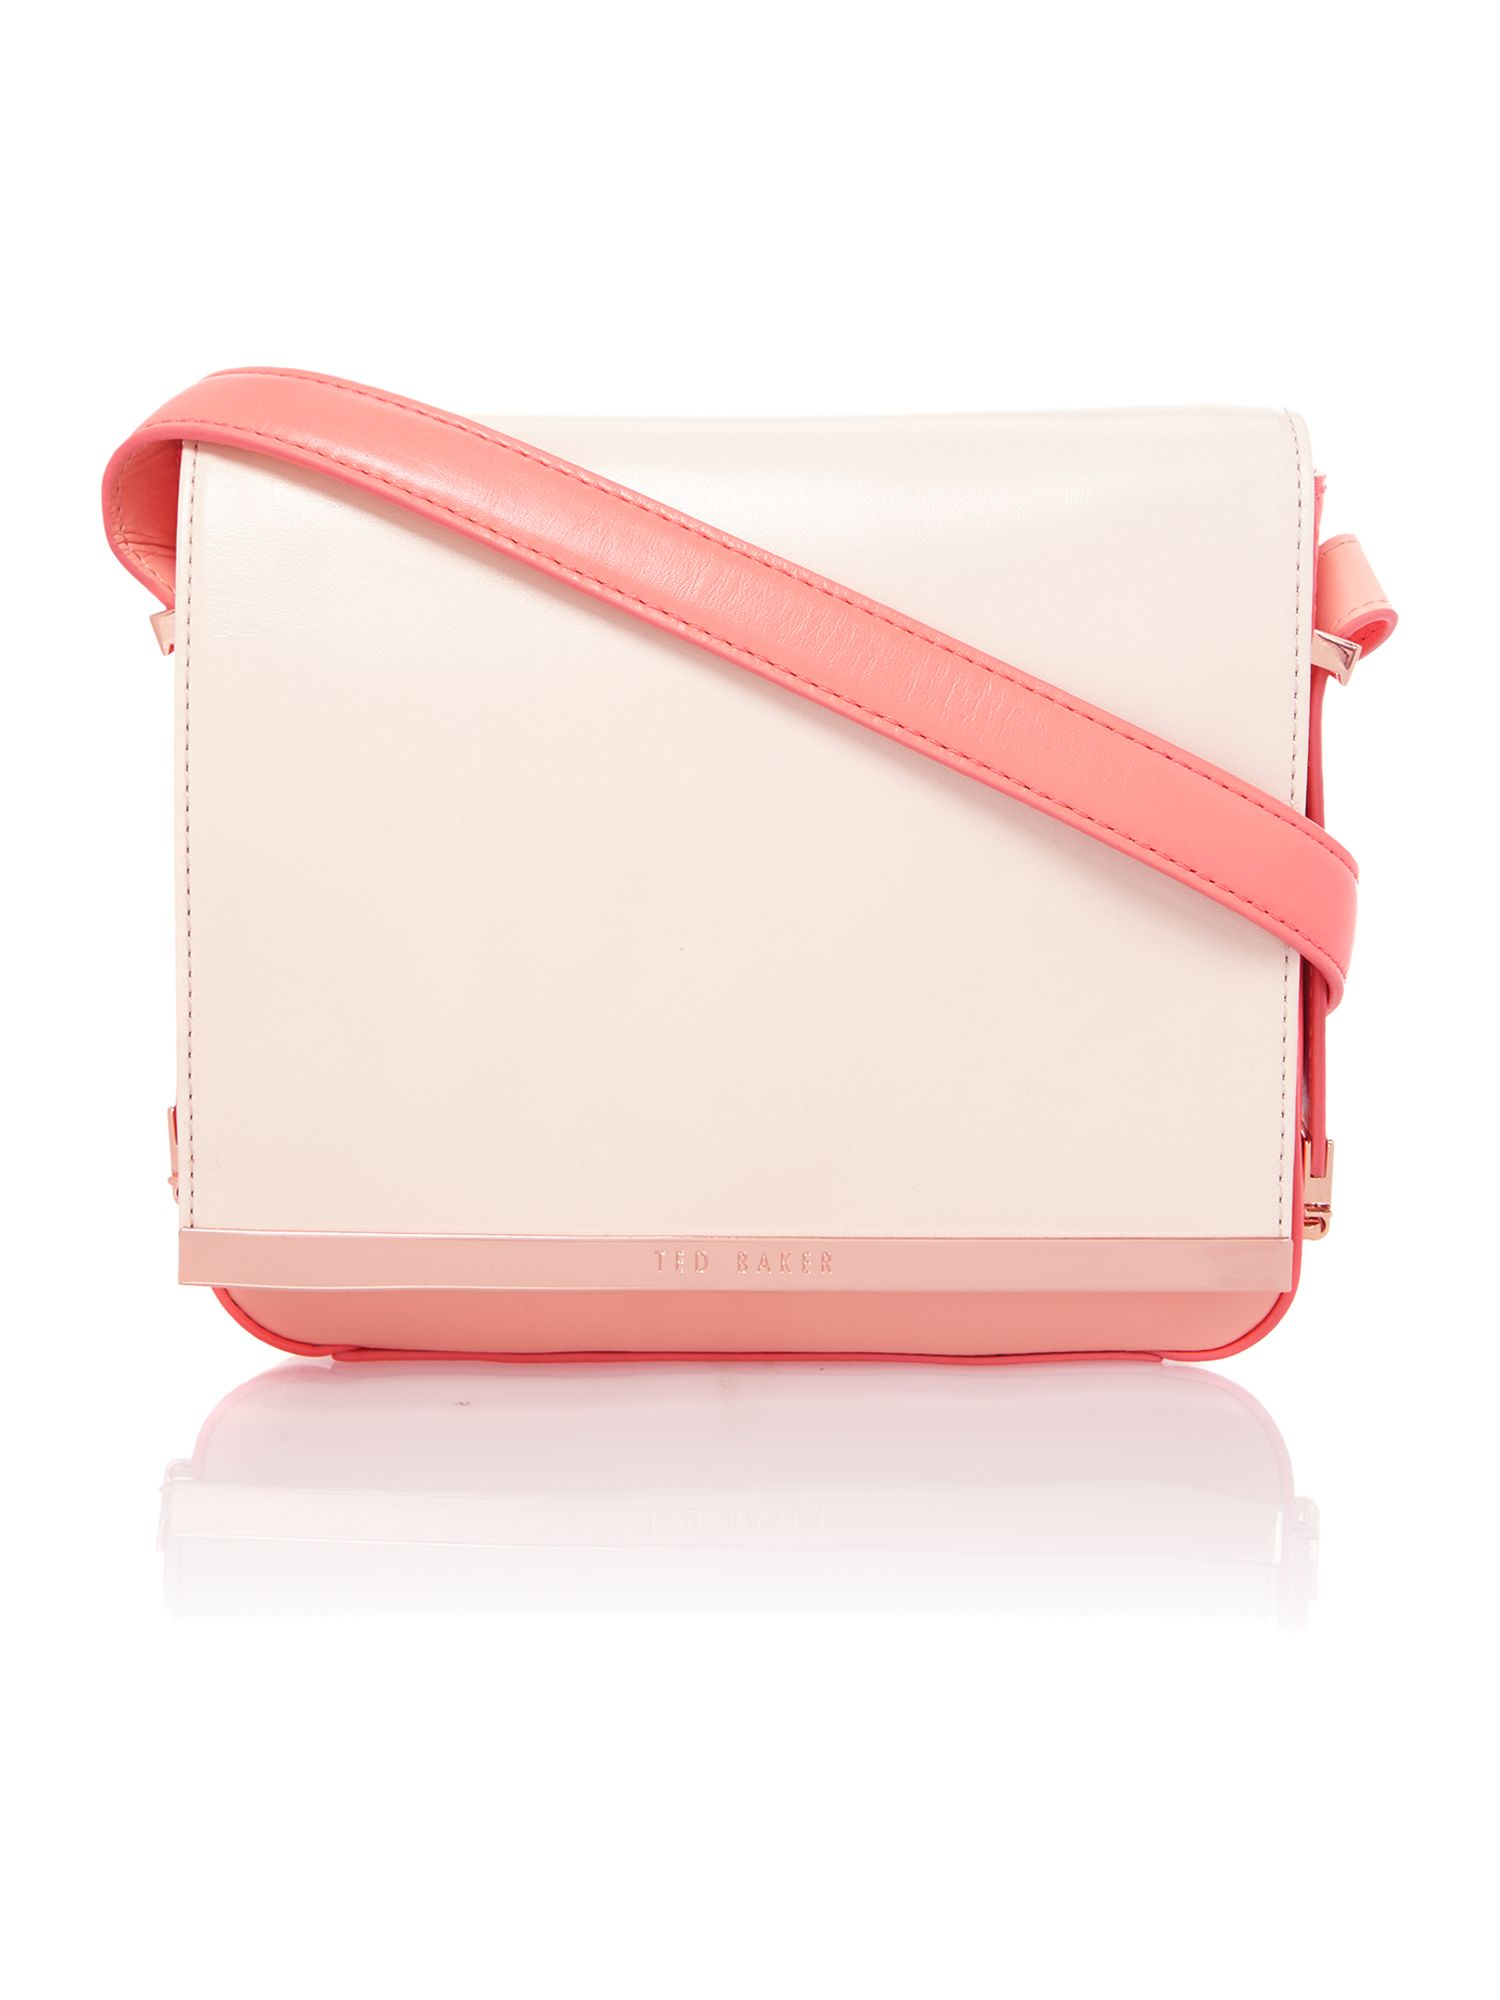 Small nude and pink cross body bag